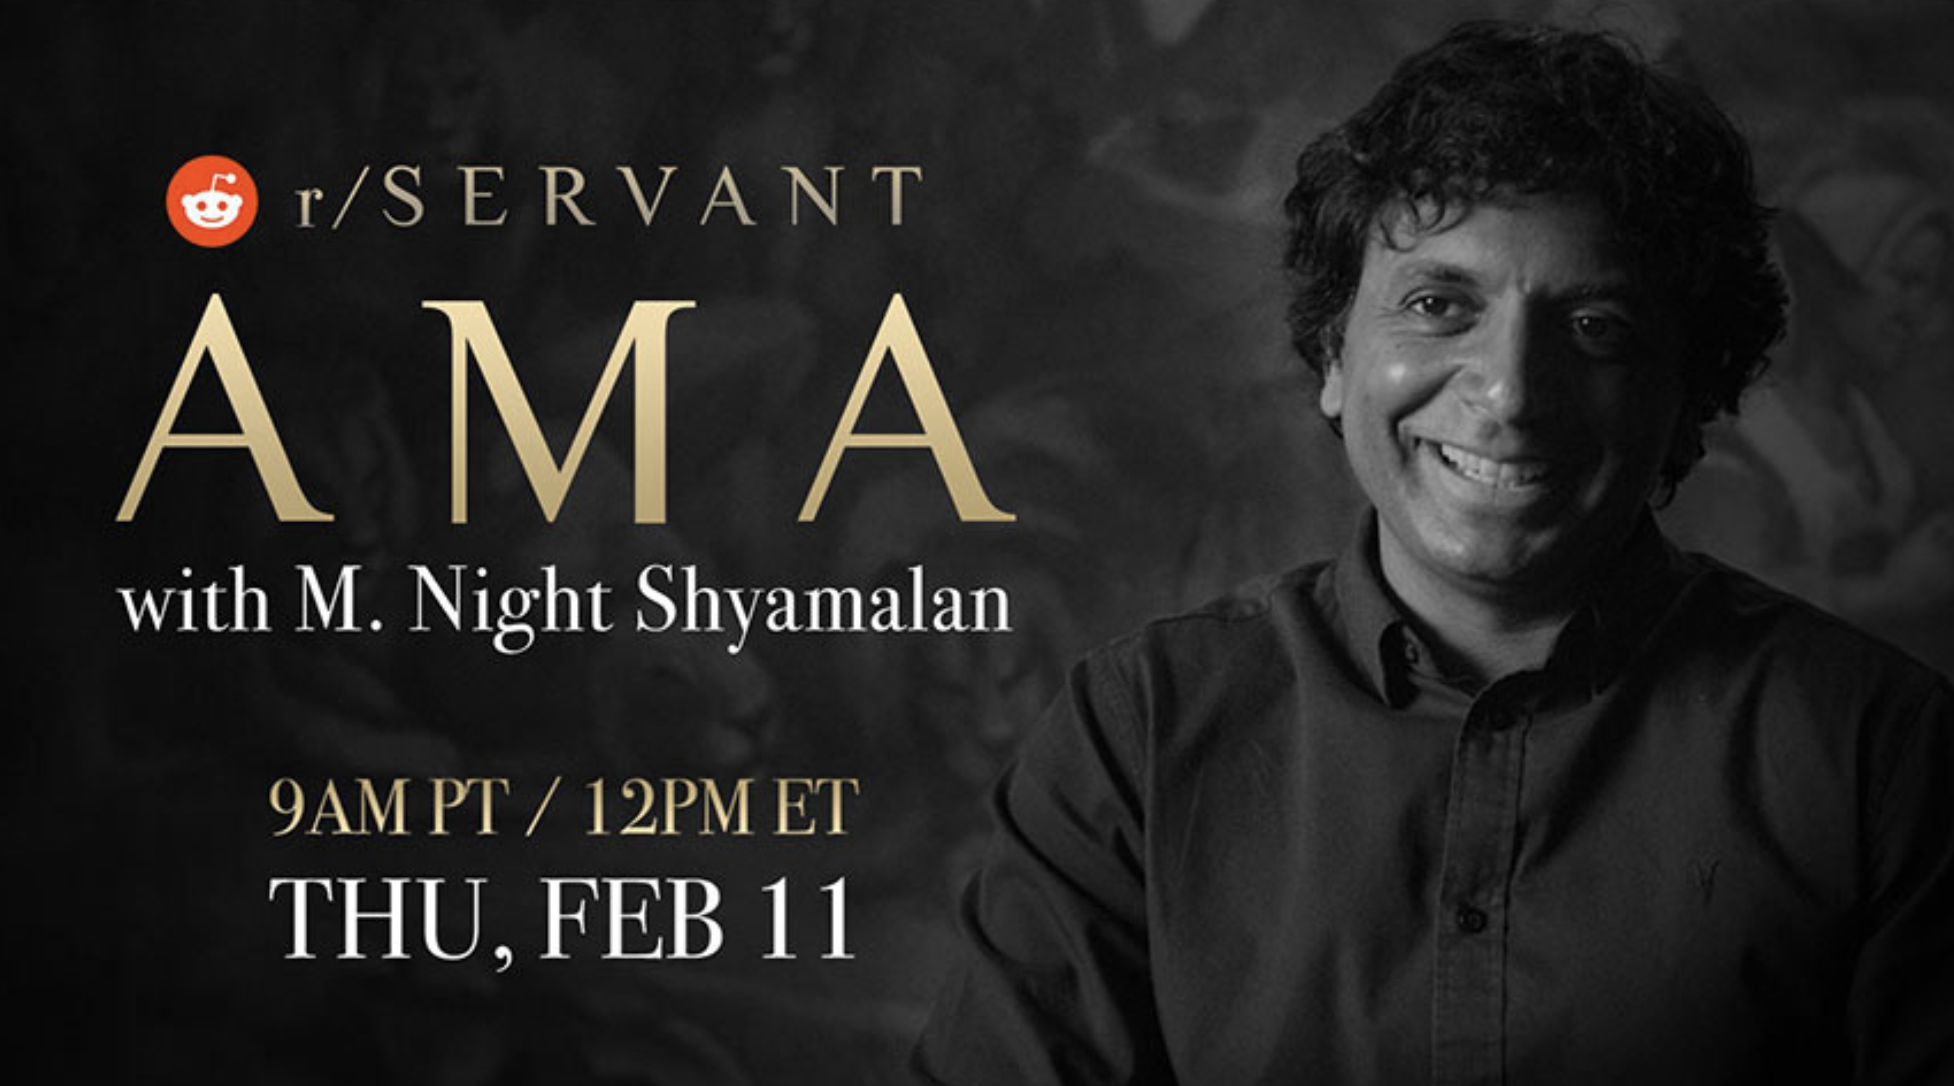 Reddit's 'Ask Me Anything' will feature M. Night Shyamalan